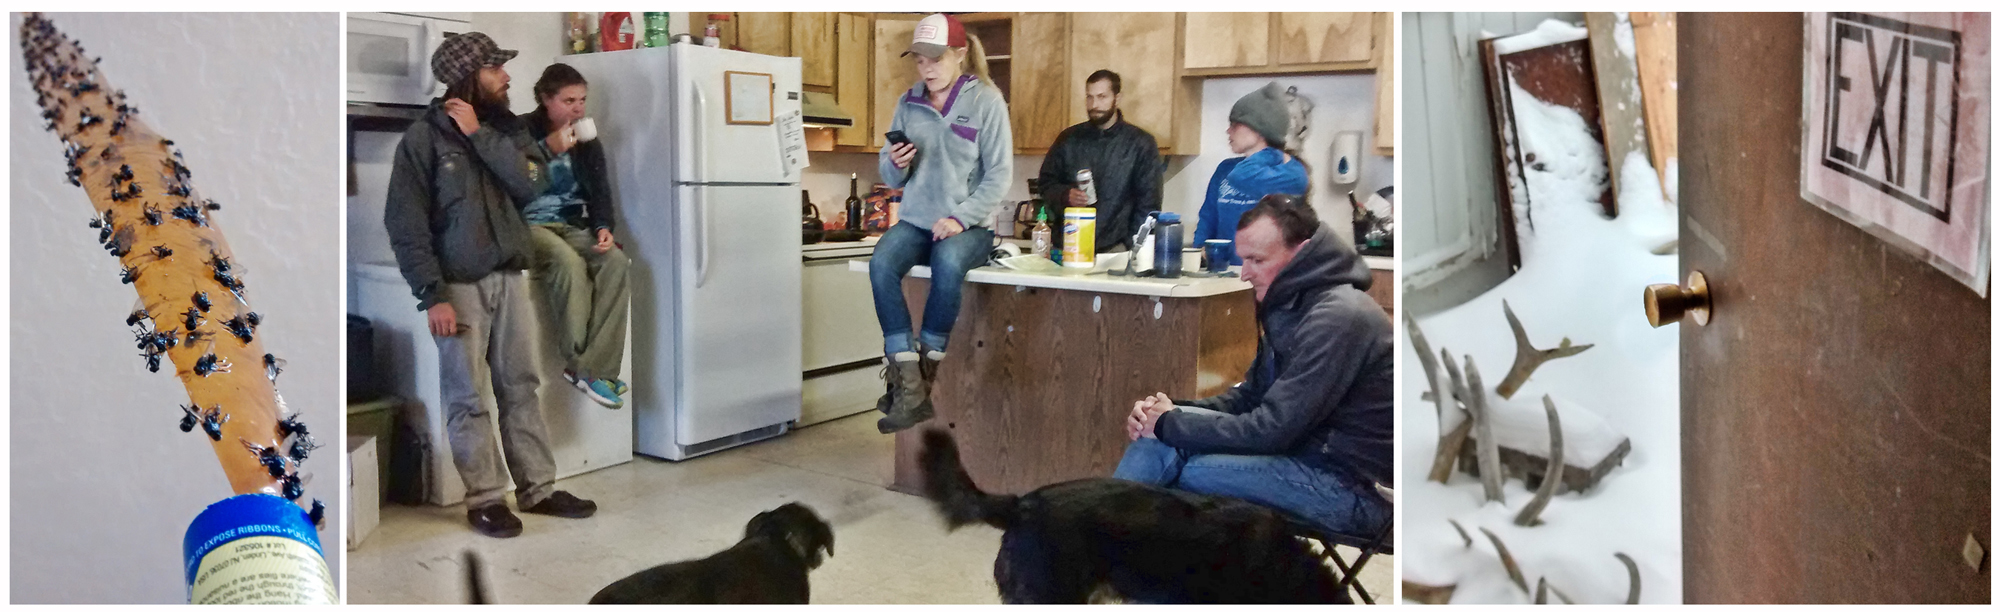 Flies, dogs, and elk shedswere all part of our morning meetings held in the kitchenette/office of Cheetah Shrub HQ.